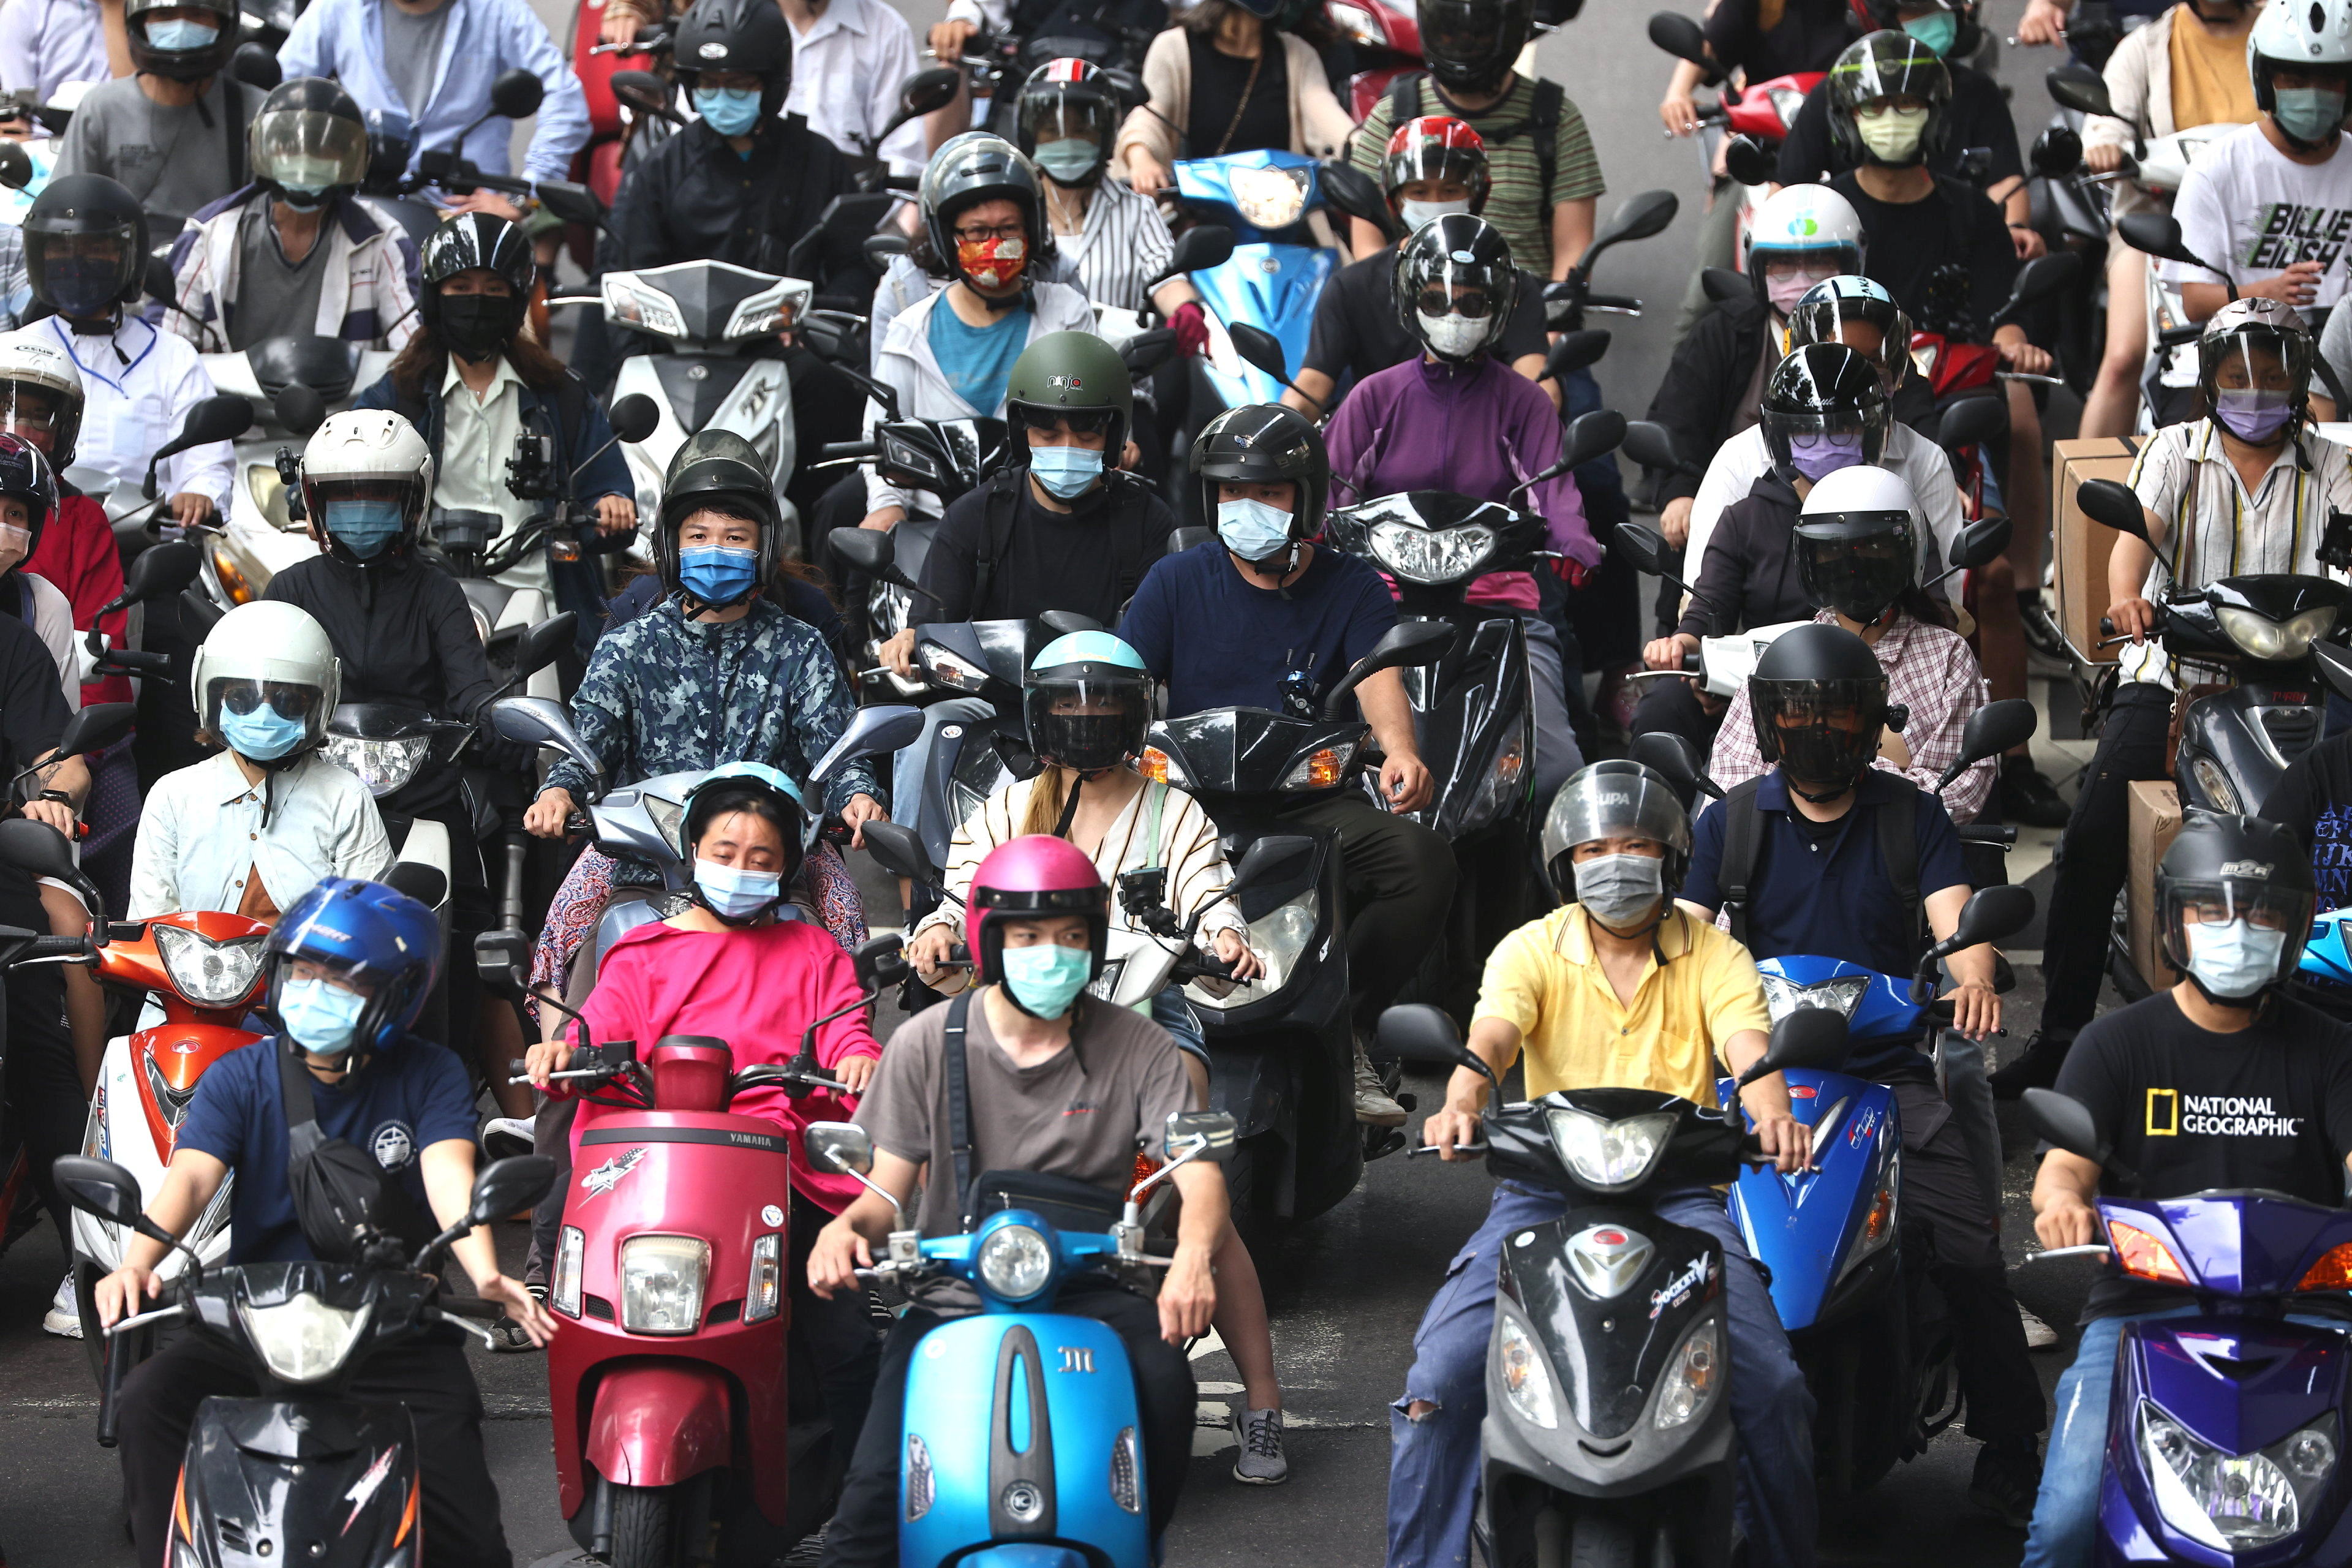 People riding motorcycles and wearing protective face masks wait at a traffic stop, amid a surge in coronavirus disease (COVID-19) infections in Taipei, Taiwan May 18, 2021. REUTERS/Ann Wang